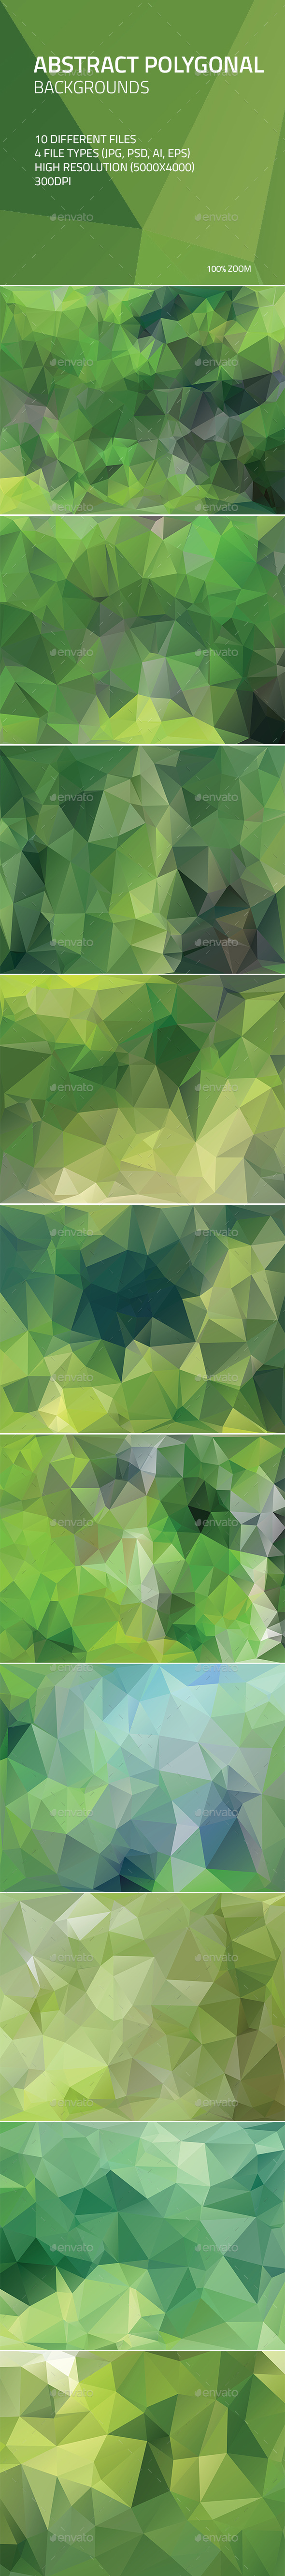 Abstract Polygonal Backgrounds 2 - Abstract Backgrounds